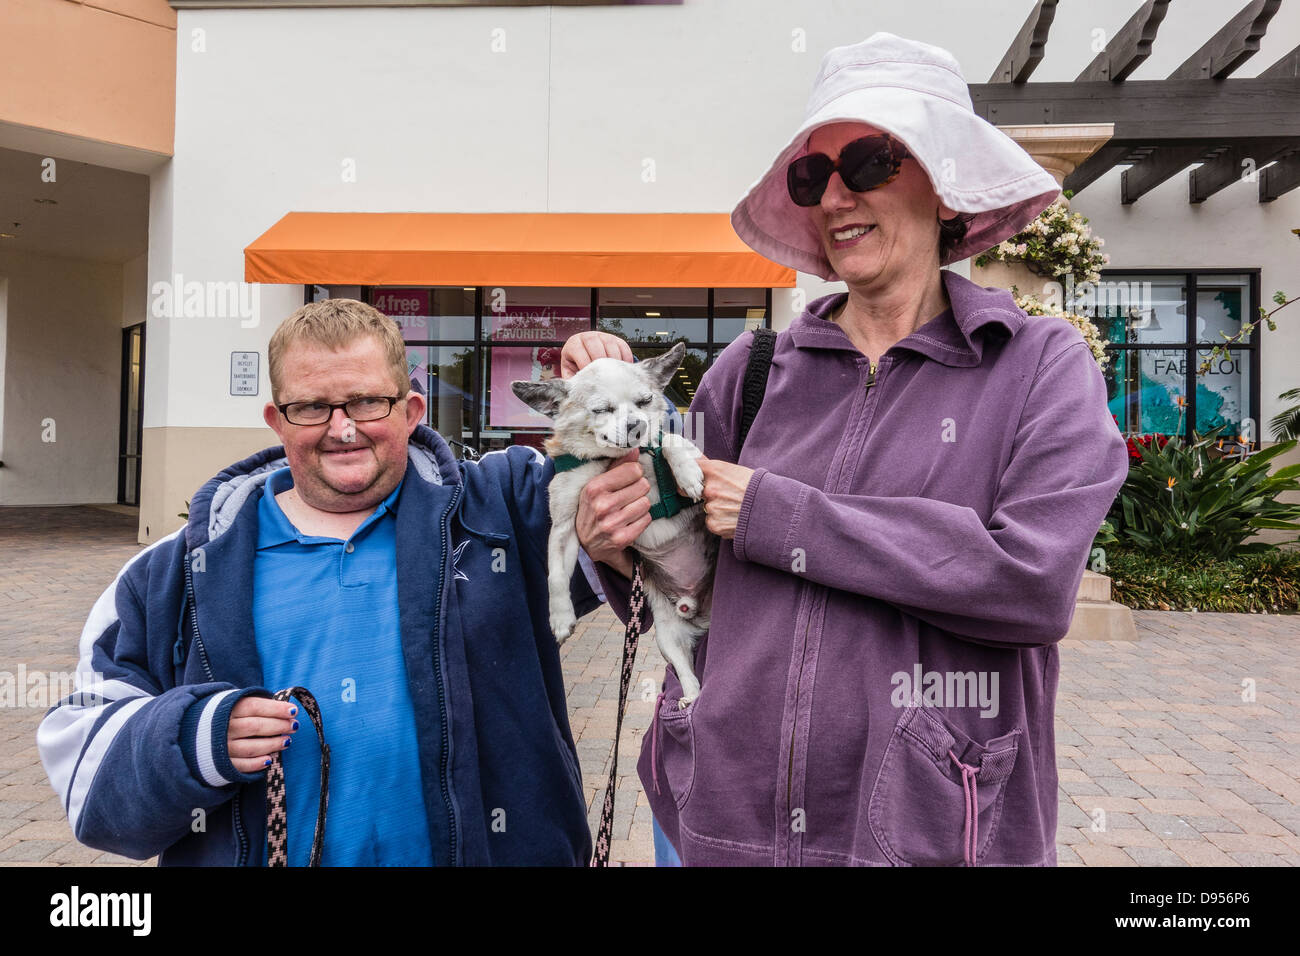 An older adult mother and her mentally disabled older son pause while she holds their pet Chihuahua dog and he pets - Stock Image